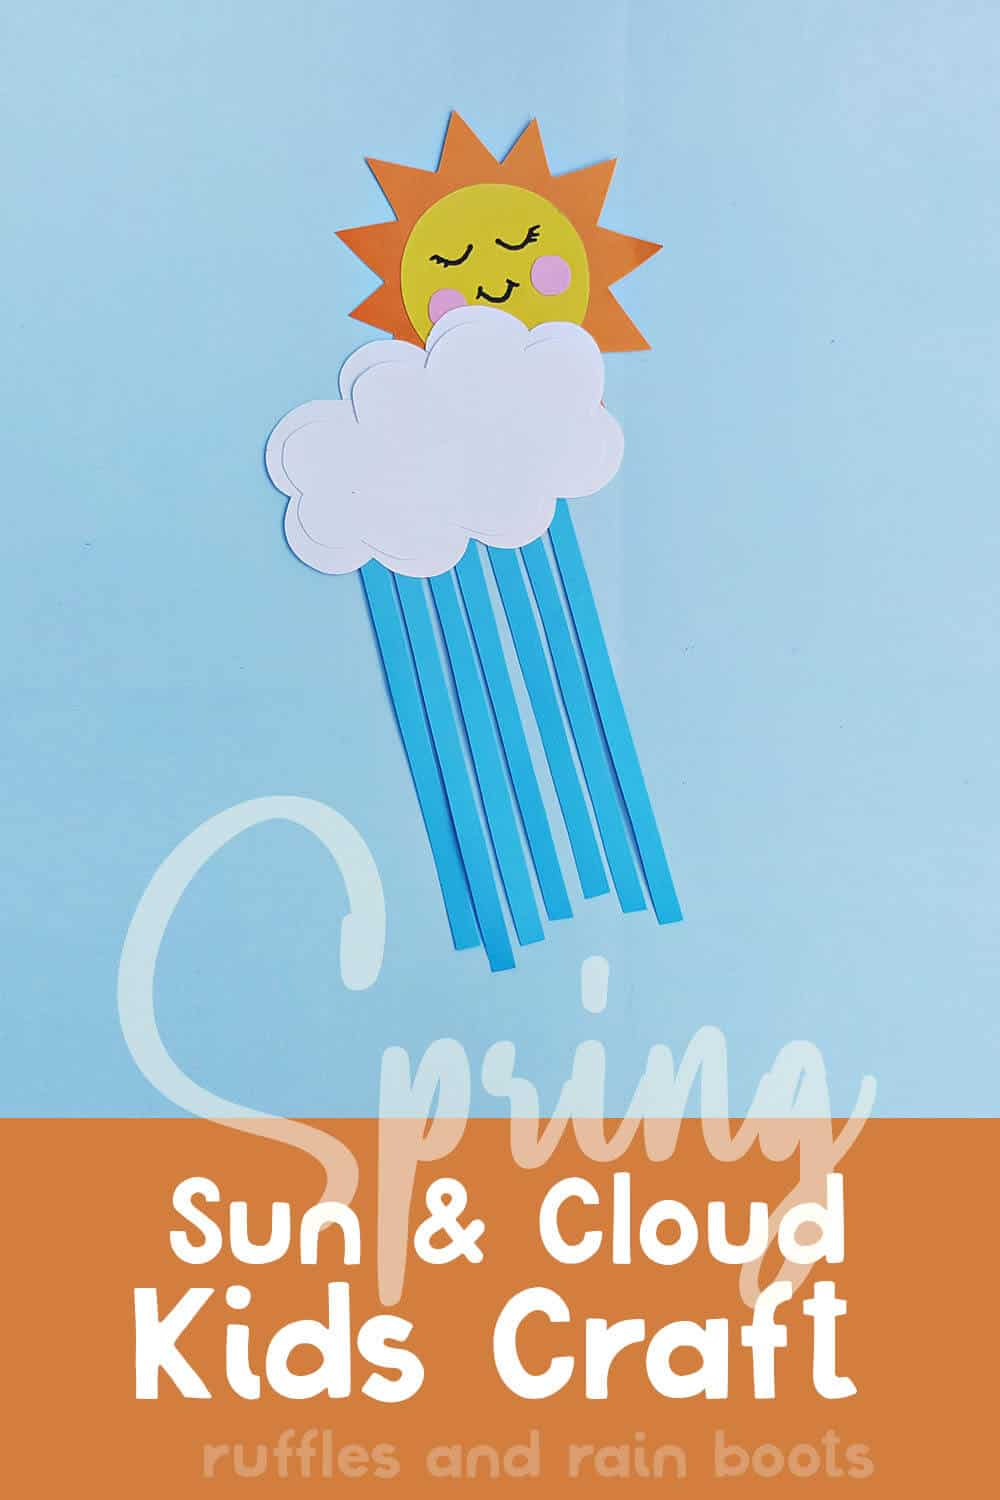 easy kids craft for spring with rain clouds and sun with text which reads spring sun & cloud kids craft